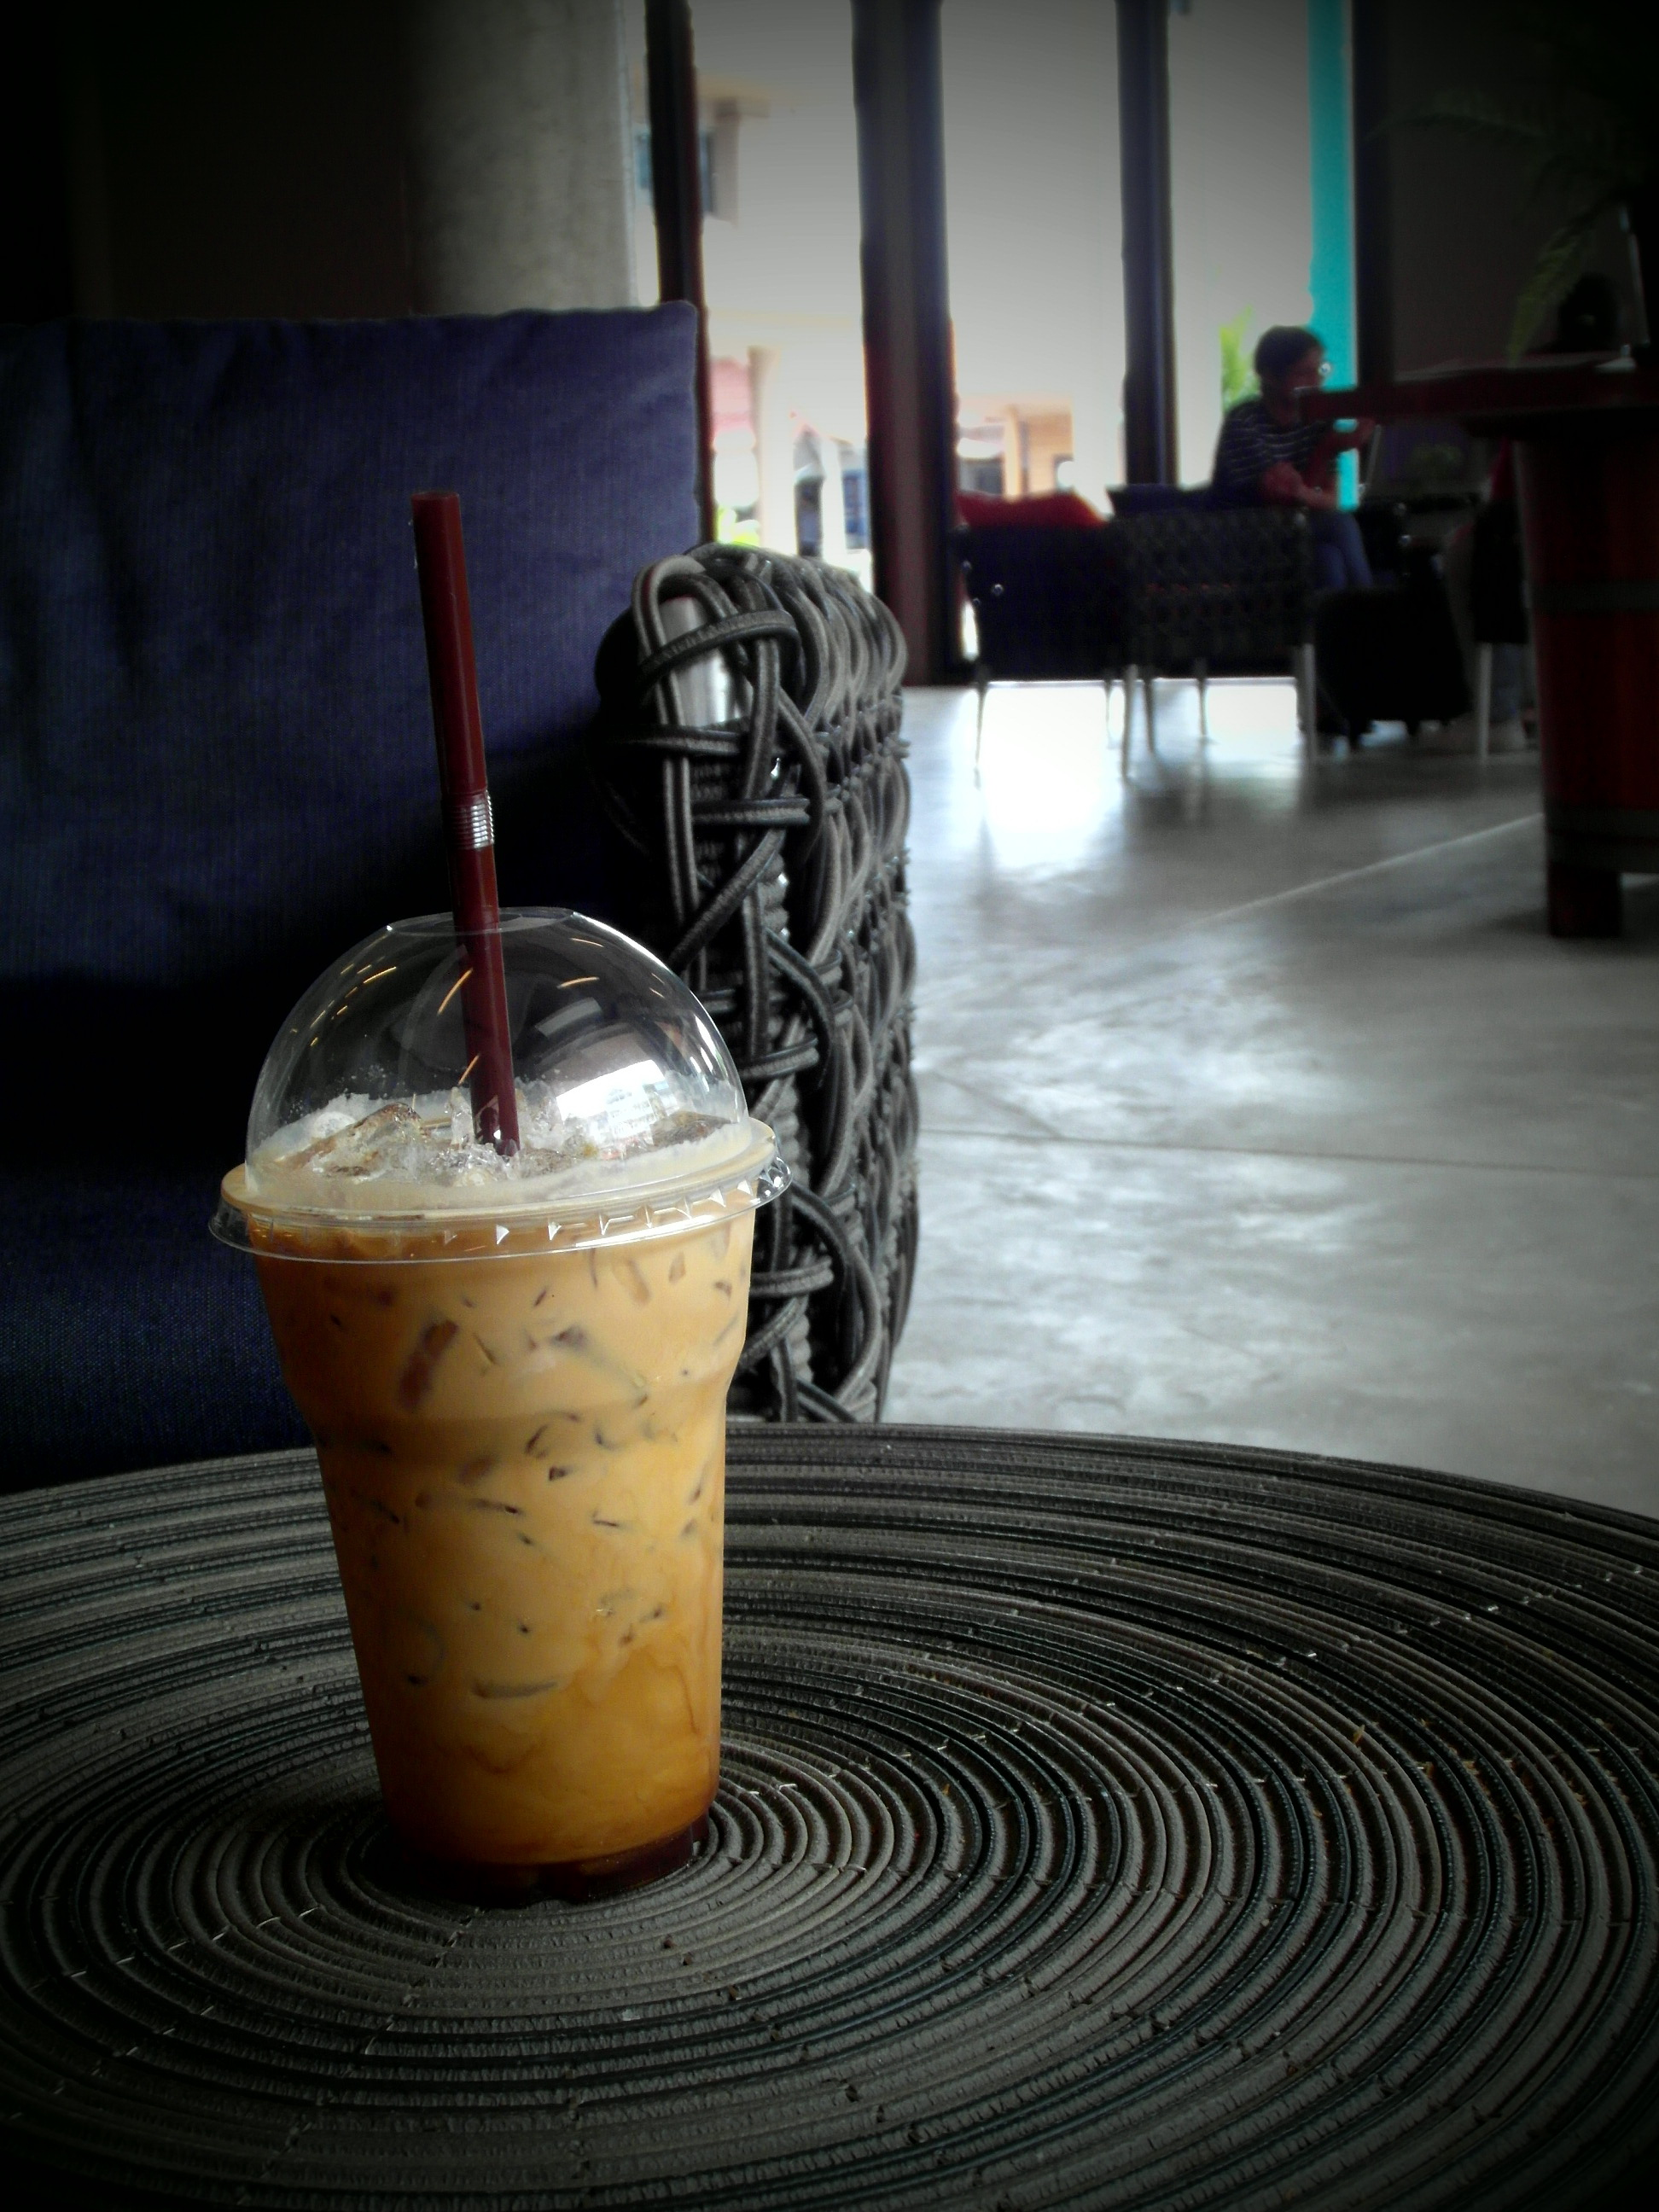 Iced Coffee, Beverage, Cafe, Coffee, Cold, HQ Photo